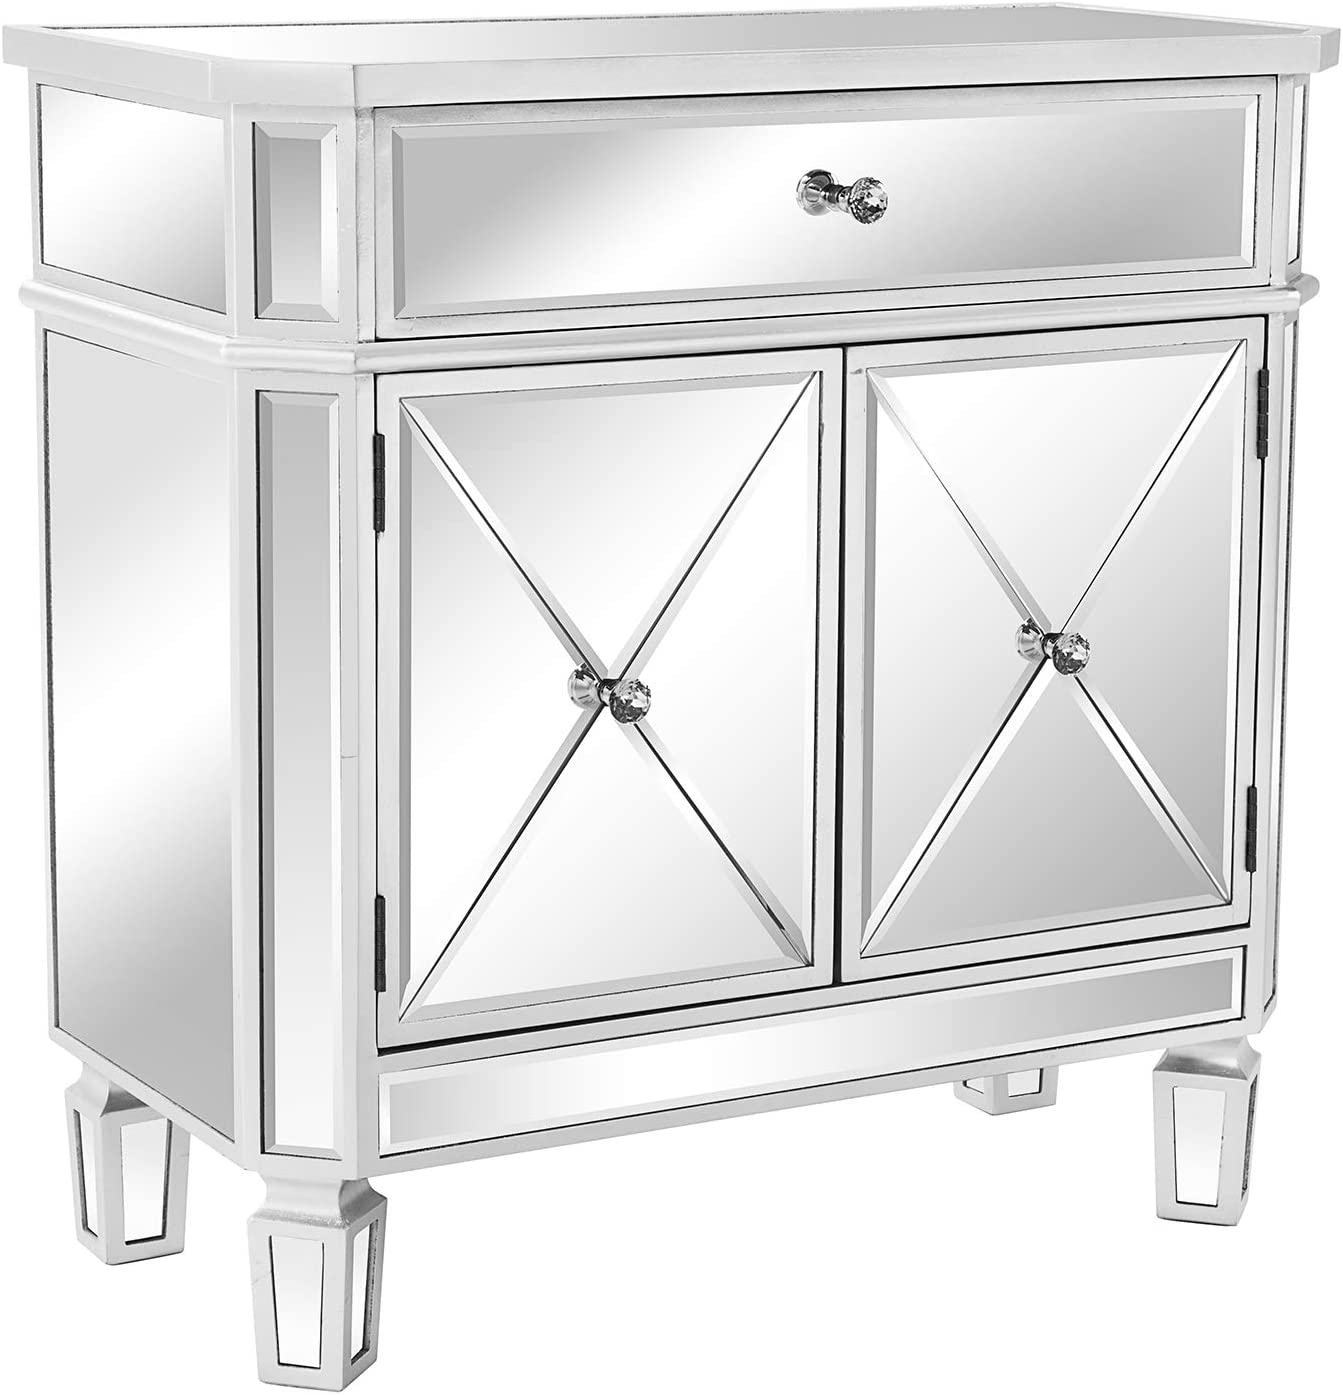 VINGLI Mirrored Cabinet Dresser Nigh Chest Max sold out 73% OFF Large Accent